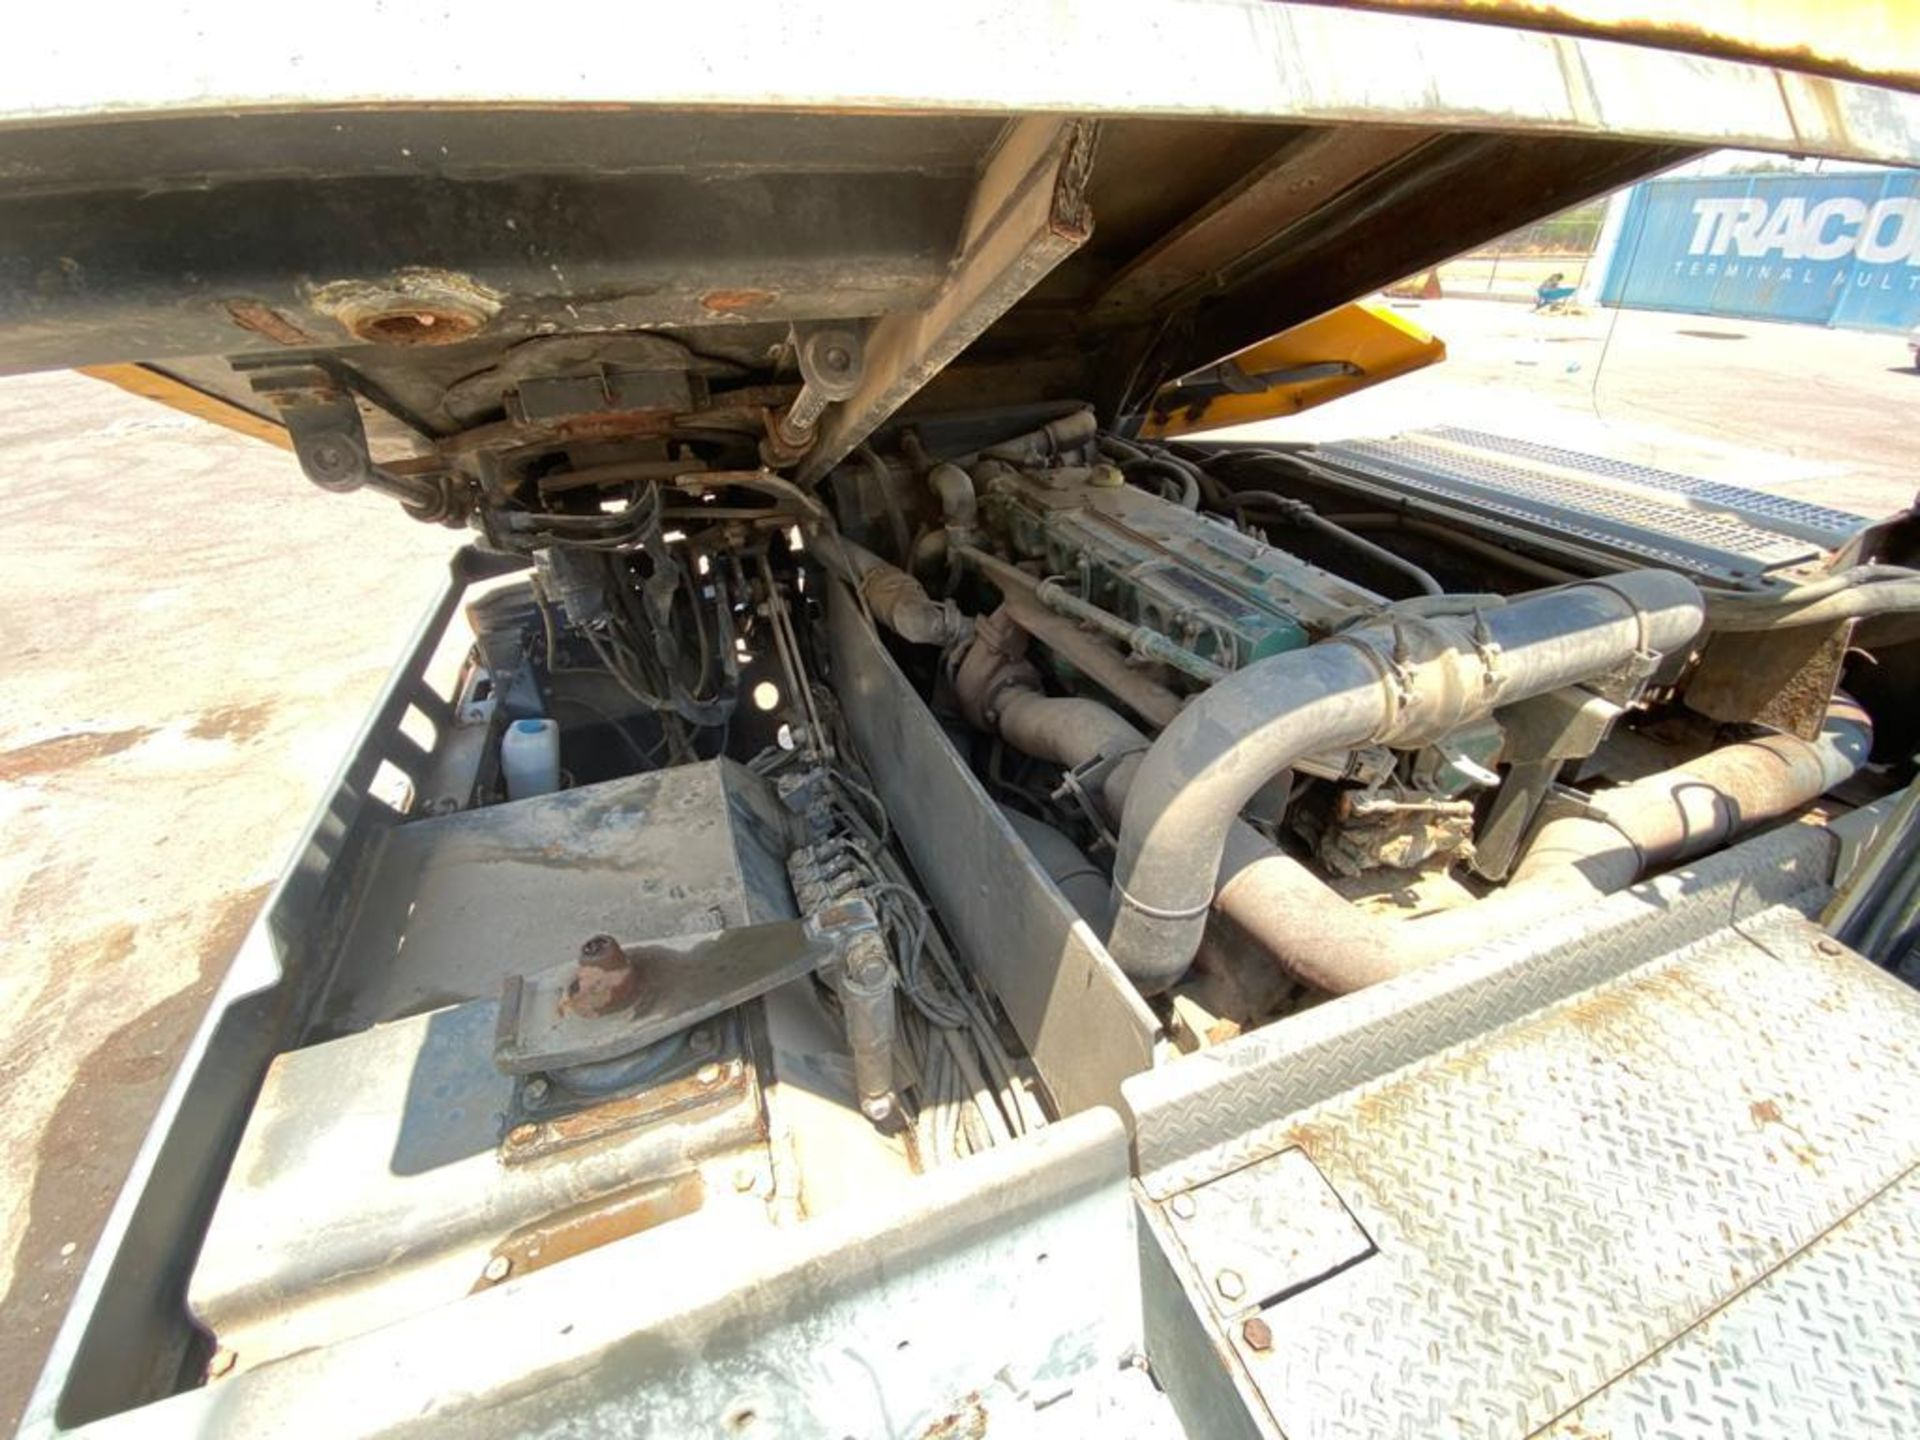 Terberg Capacity 2002 Terminal Tractor, automatic transmission - Image 51 of 57